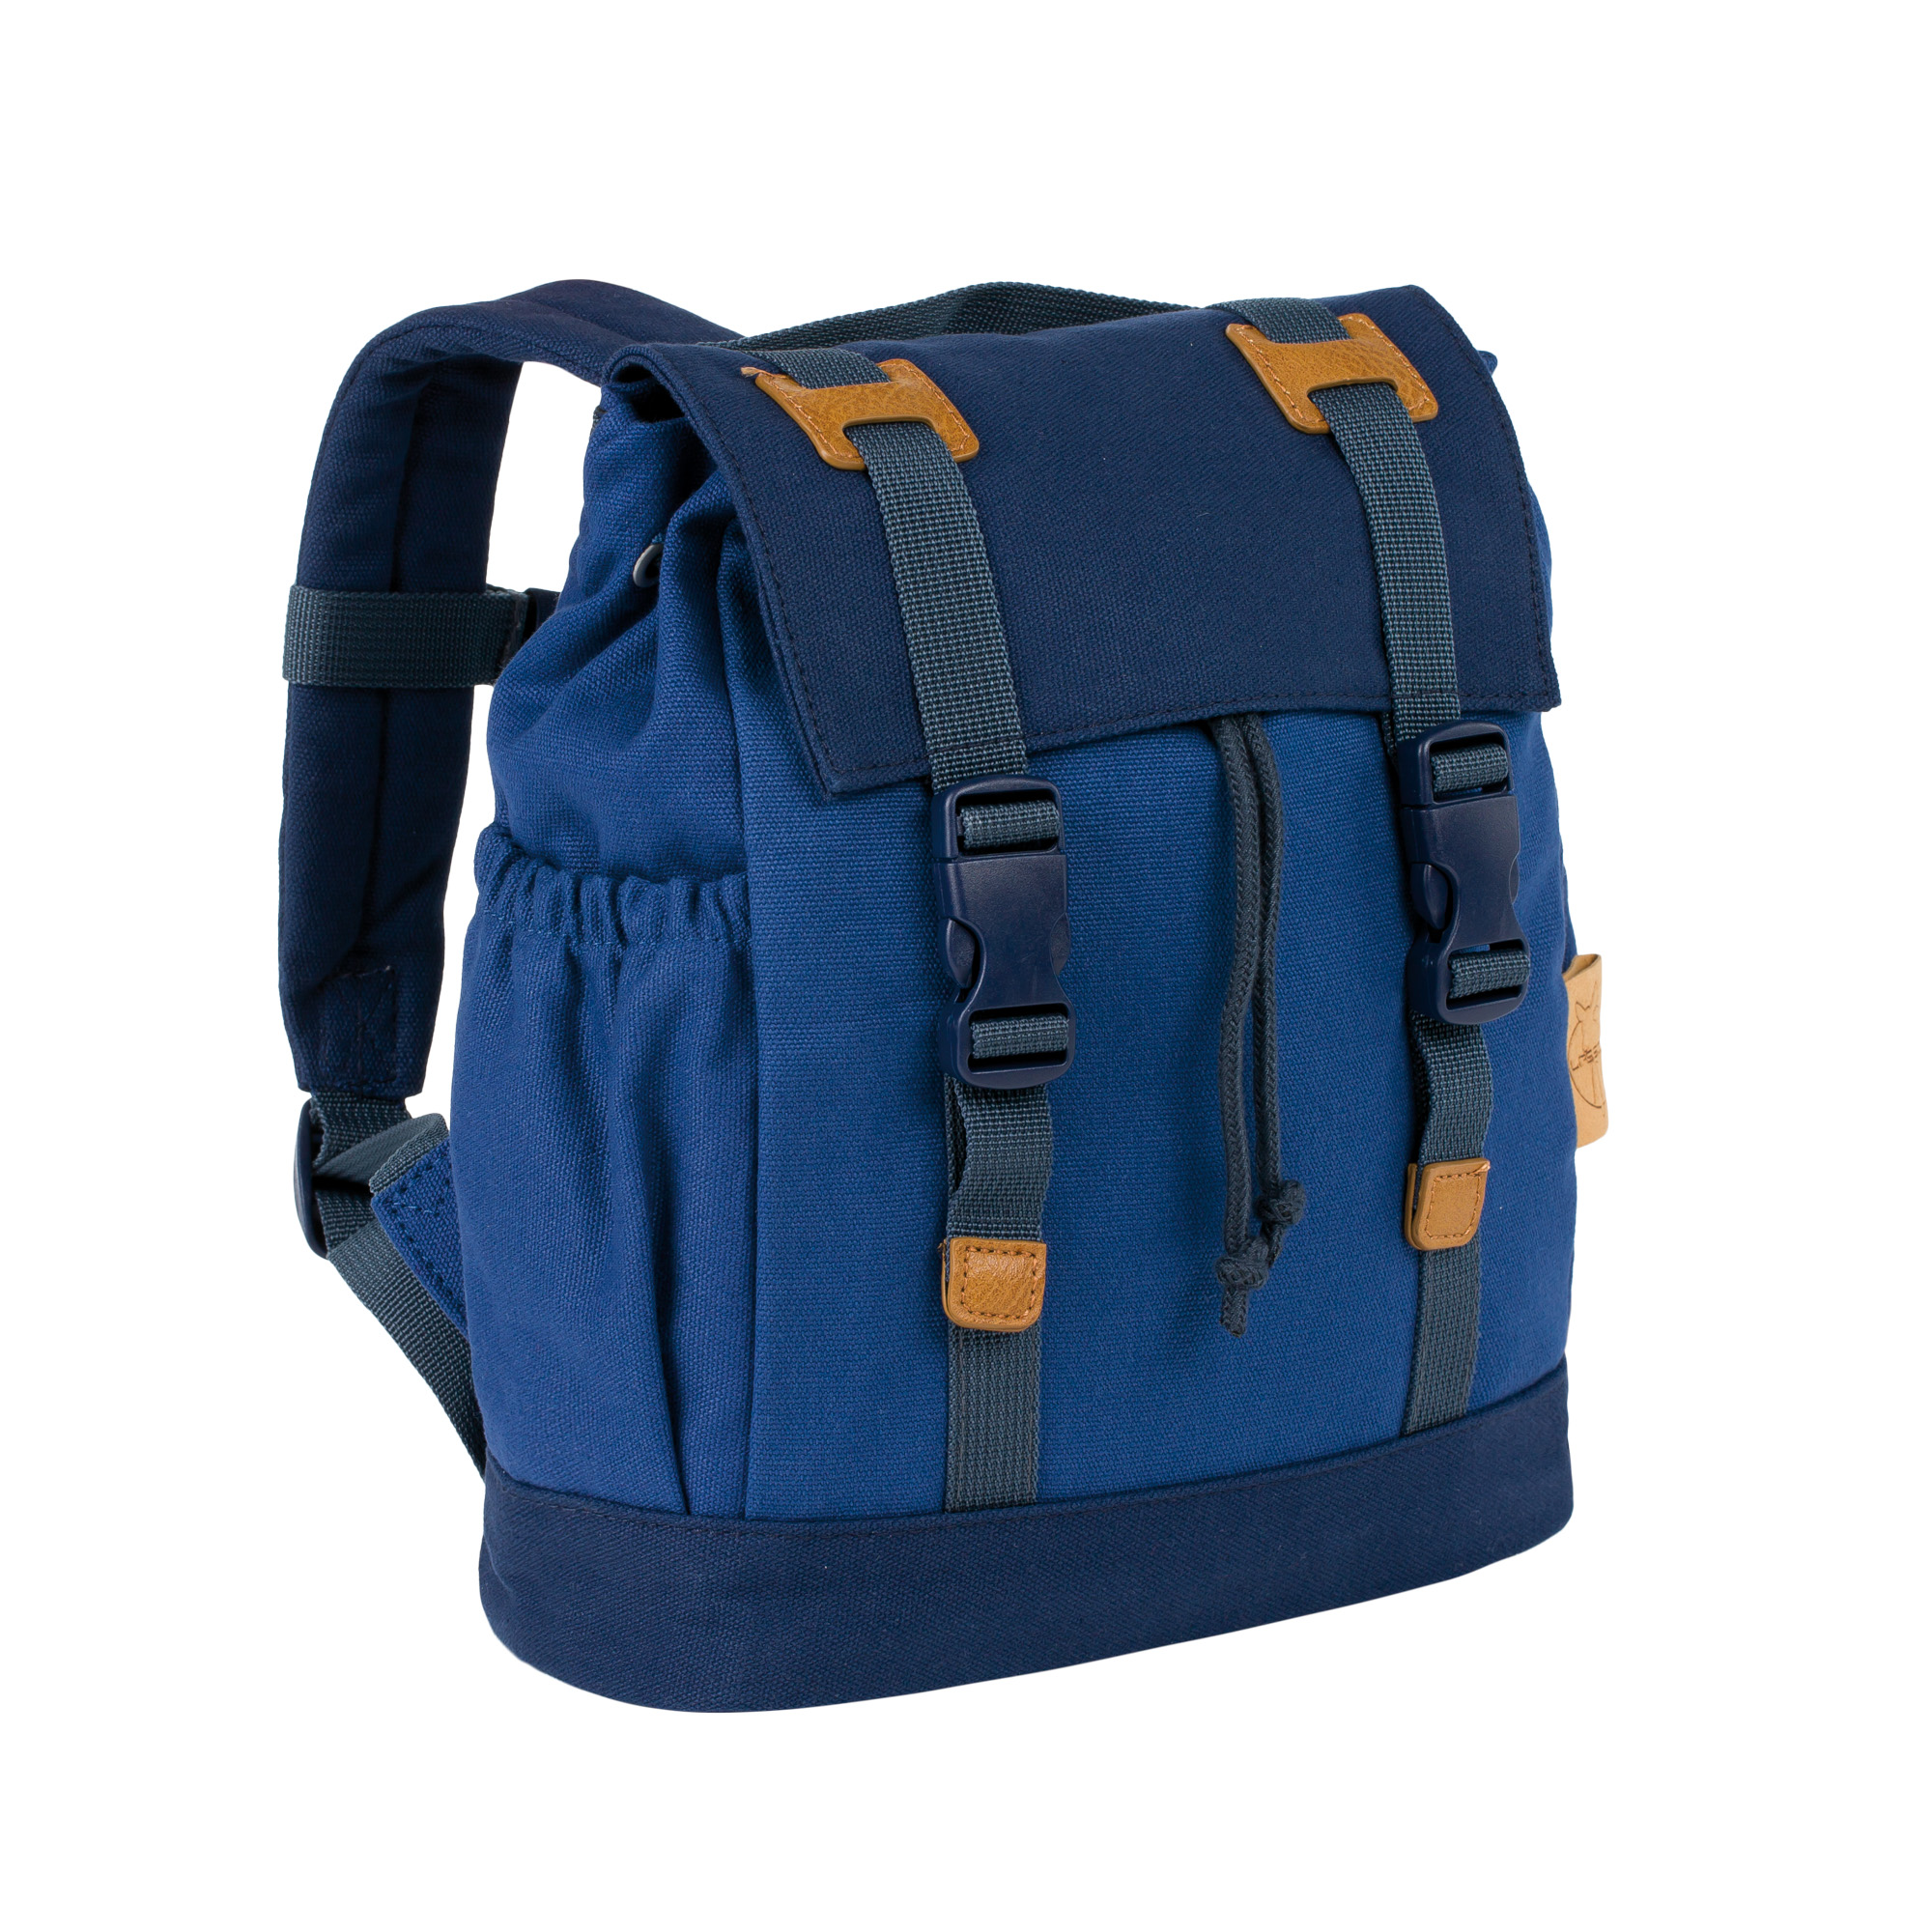 Little One & Me Backpack Small blue